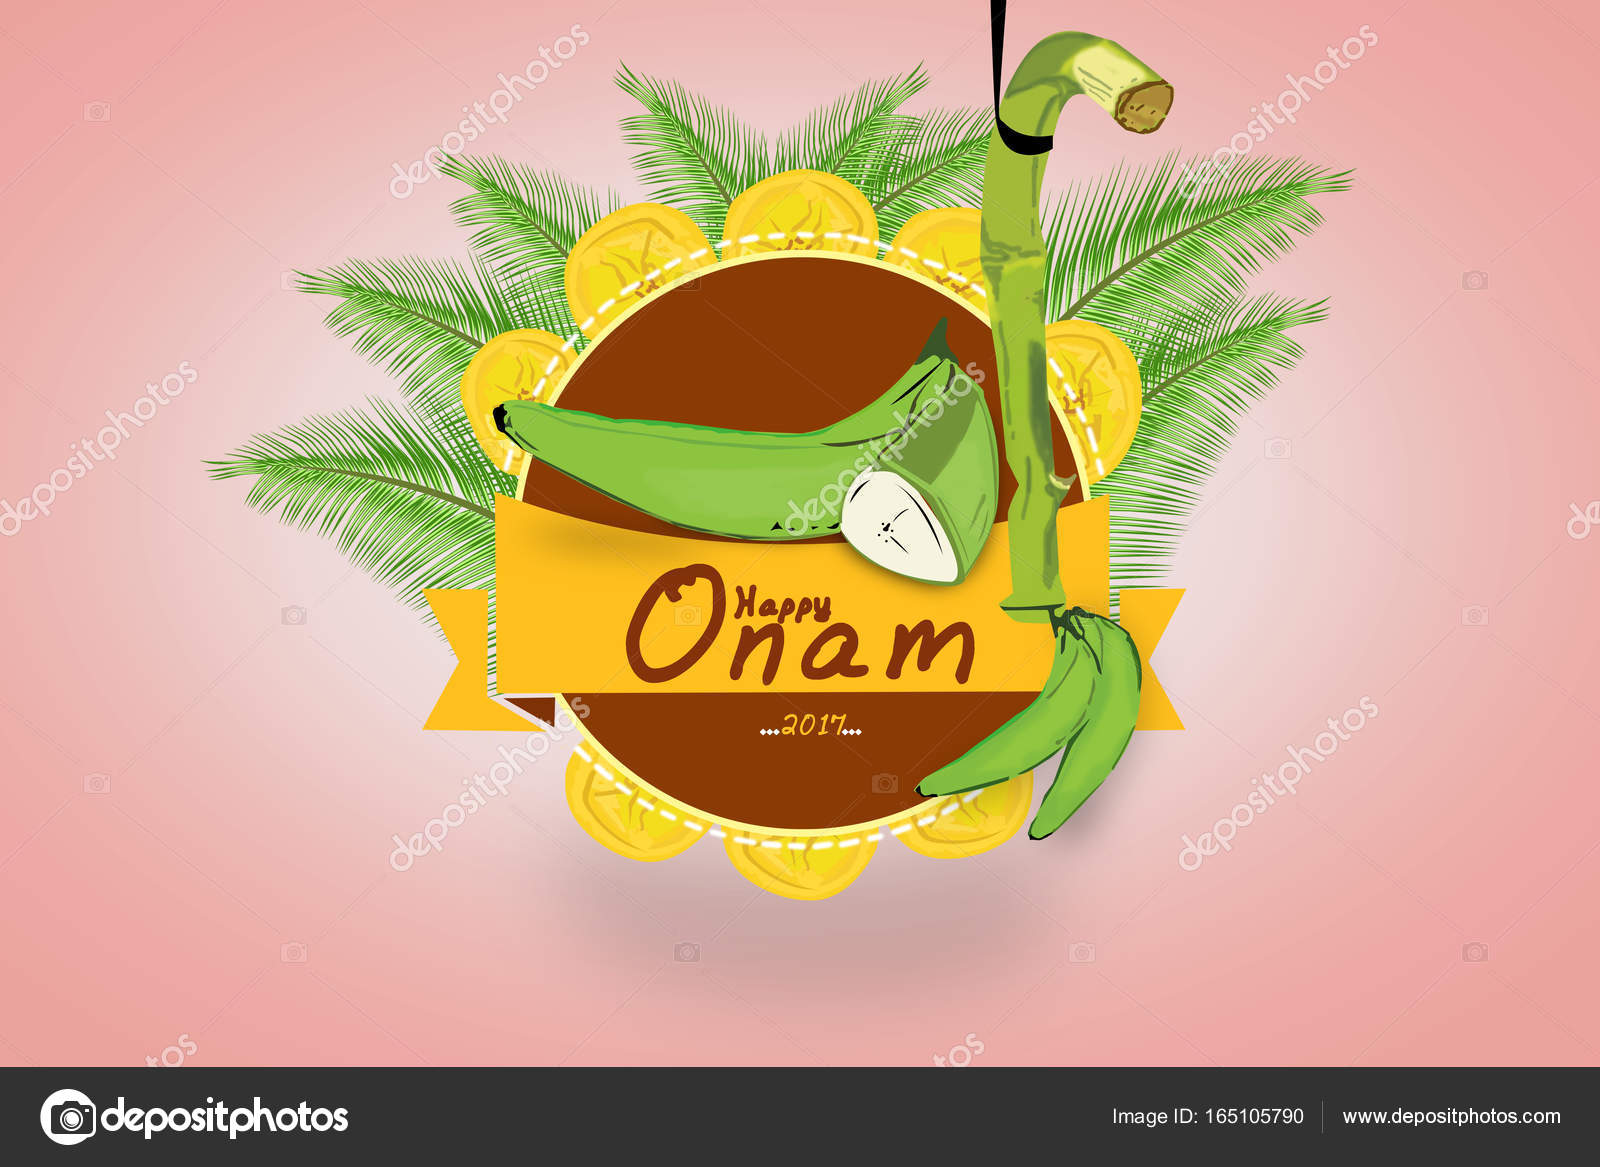 onam falls in the month of chingam which is the first month according to the malayalam calendar the celebrations mark the malayalam new year